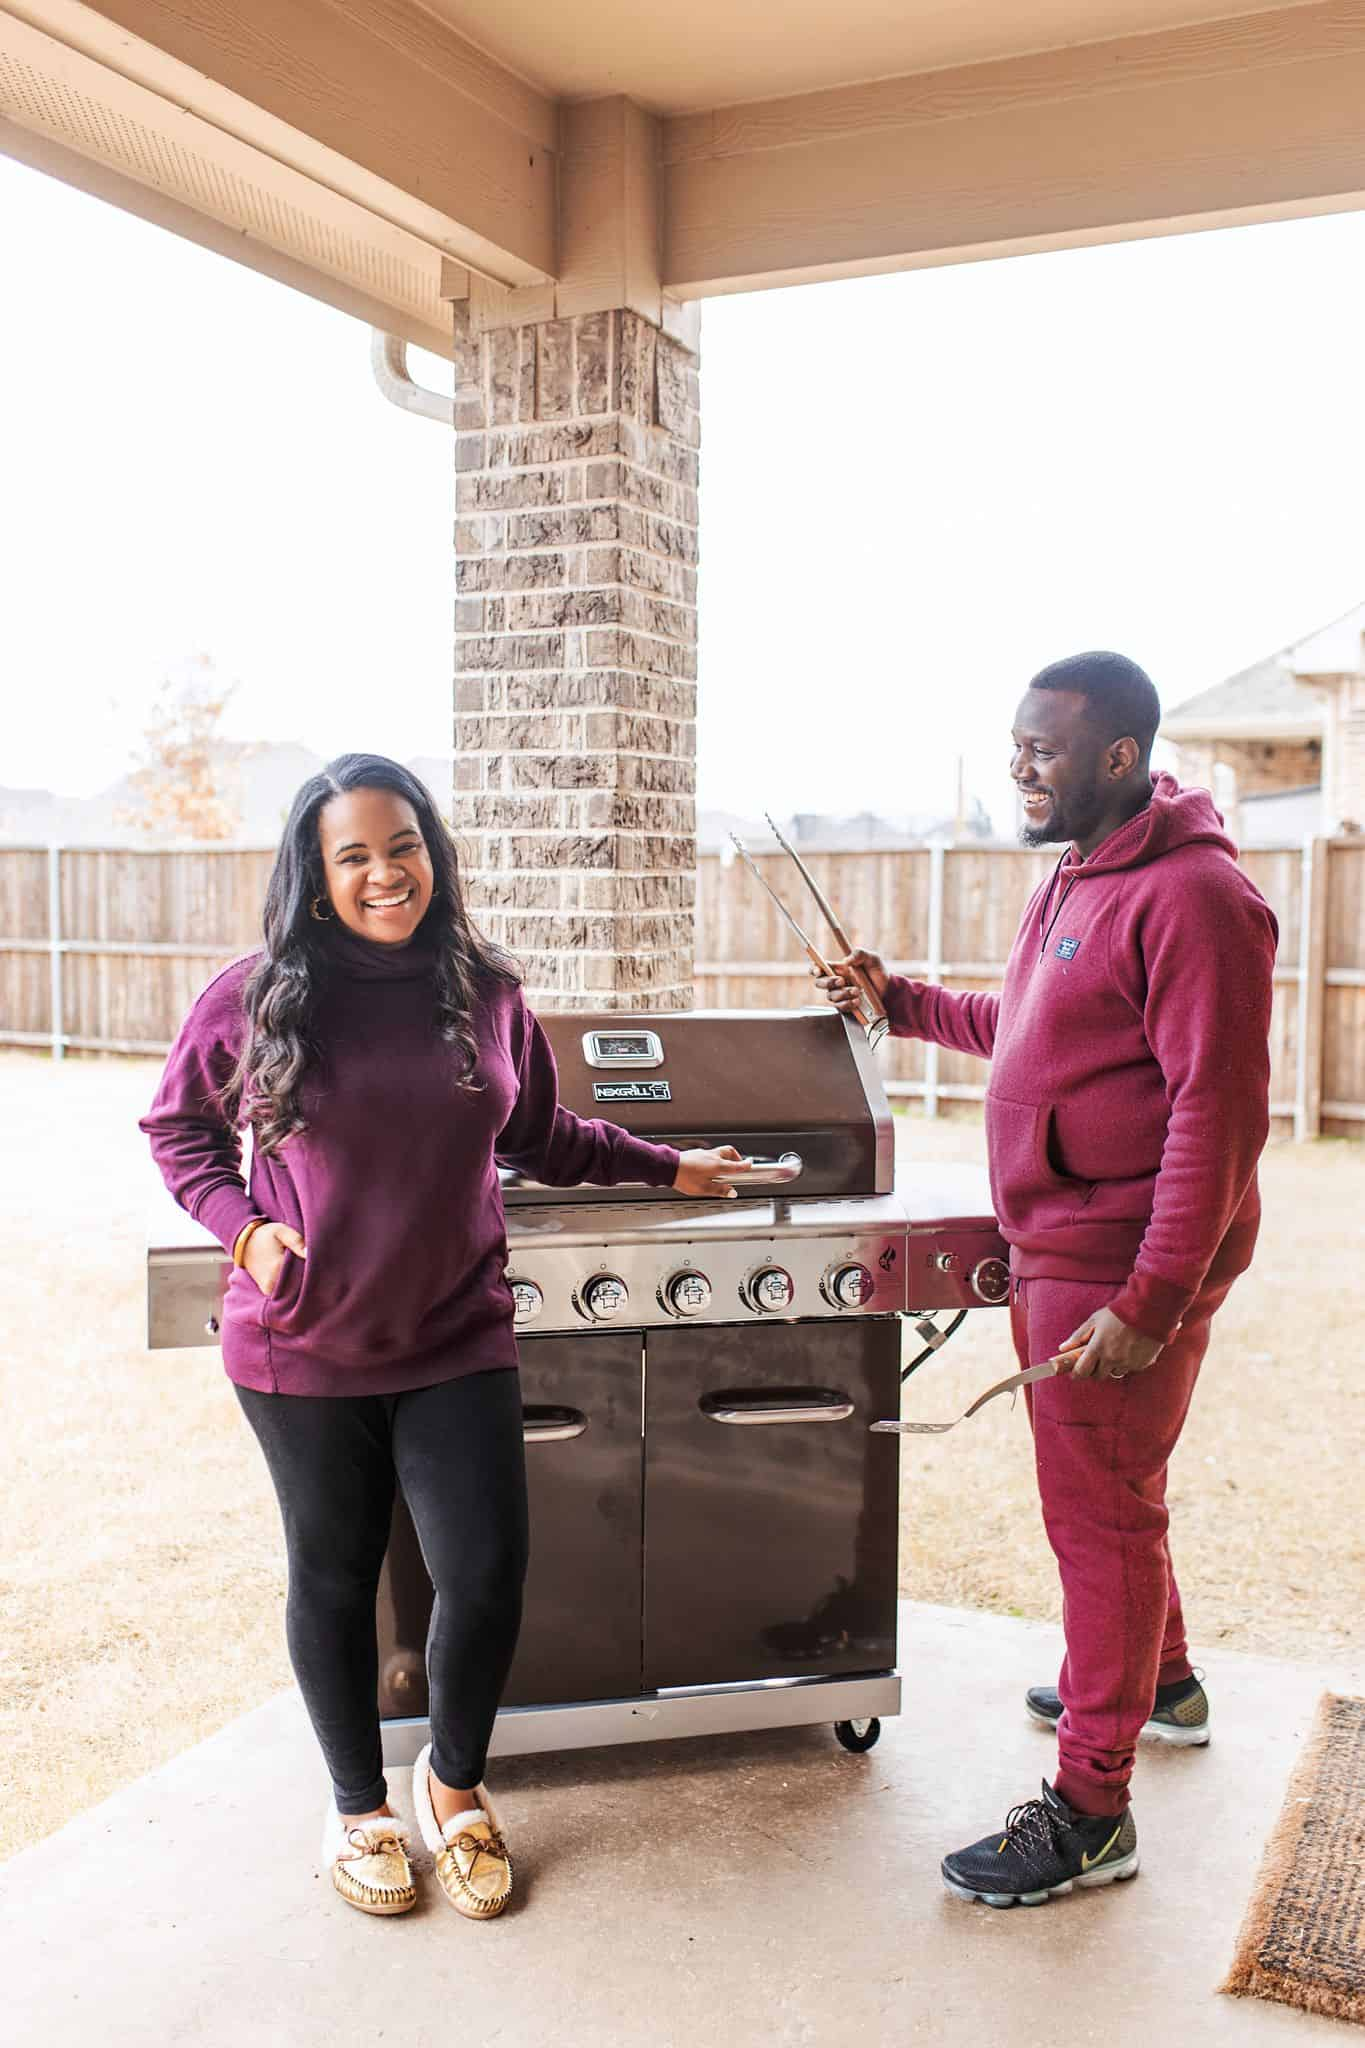 Home Depot Valentine's Day Gifts for Him by popular Dallas lifestyle blog, Glamorous Versatility: image of a man and woman standing next to a BBQ.